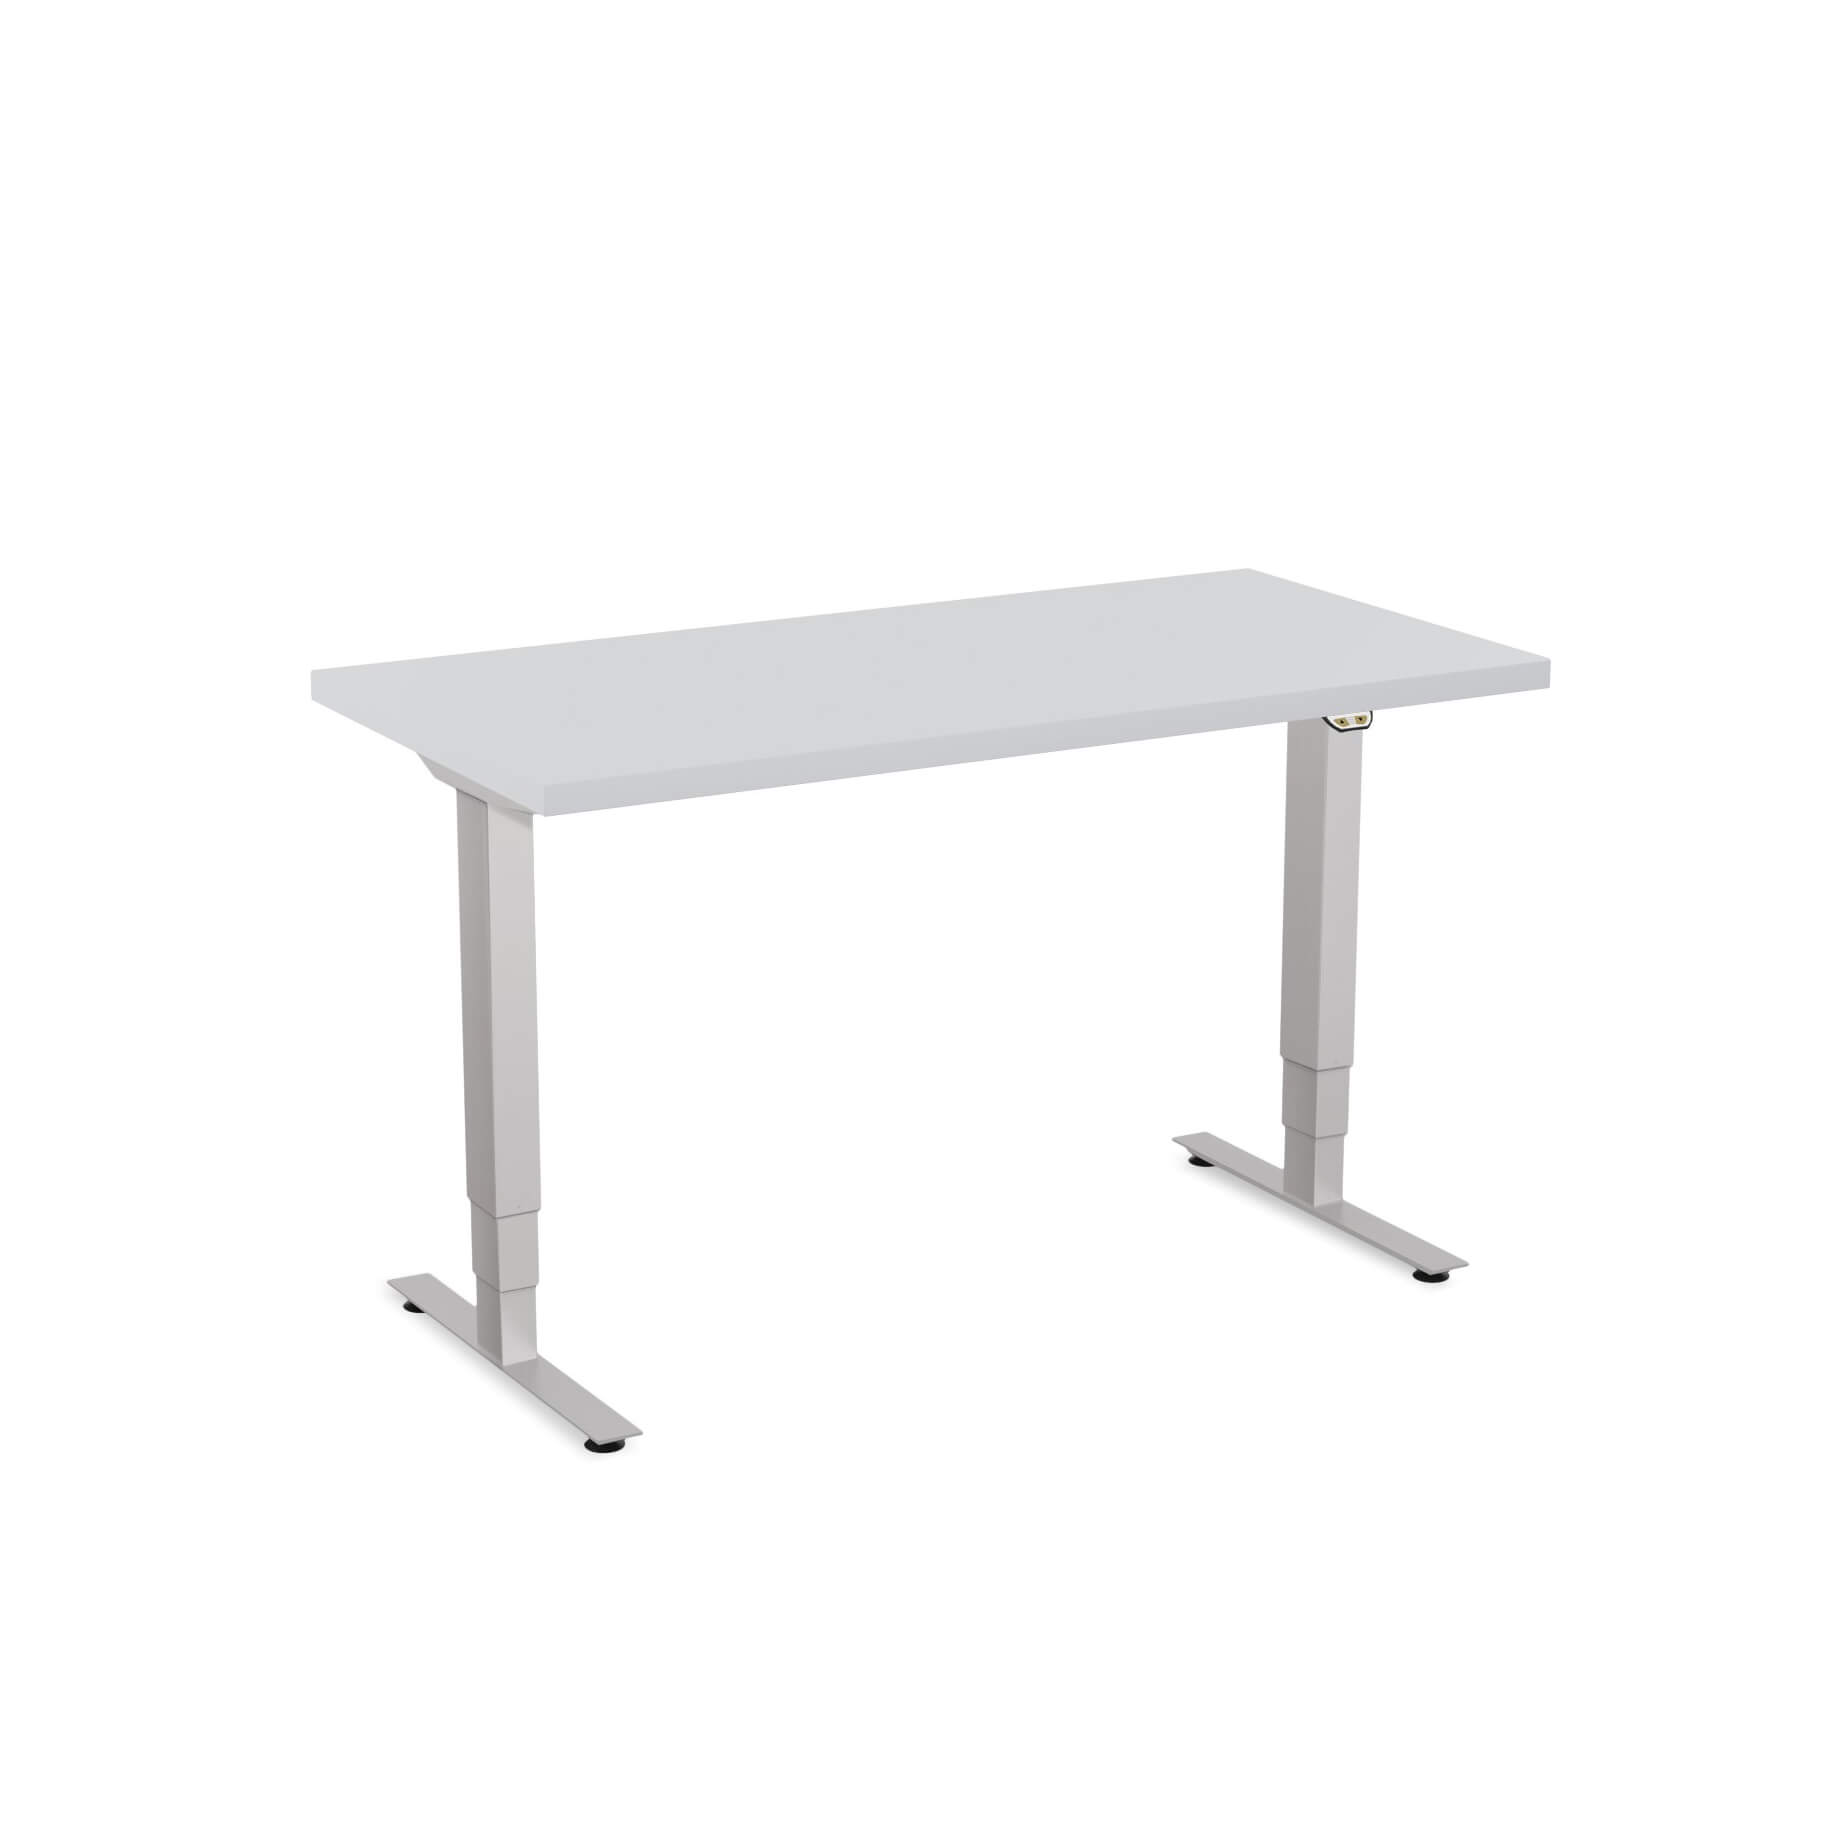 sit-stand-desk-height-adjustable-table-1.jpg